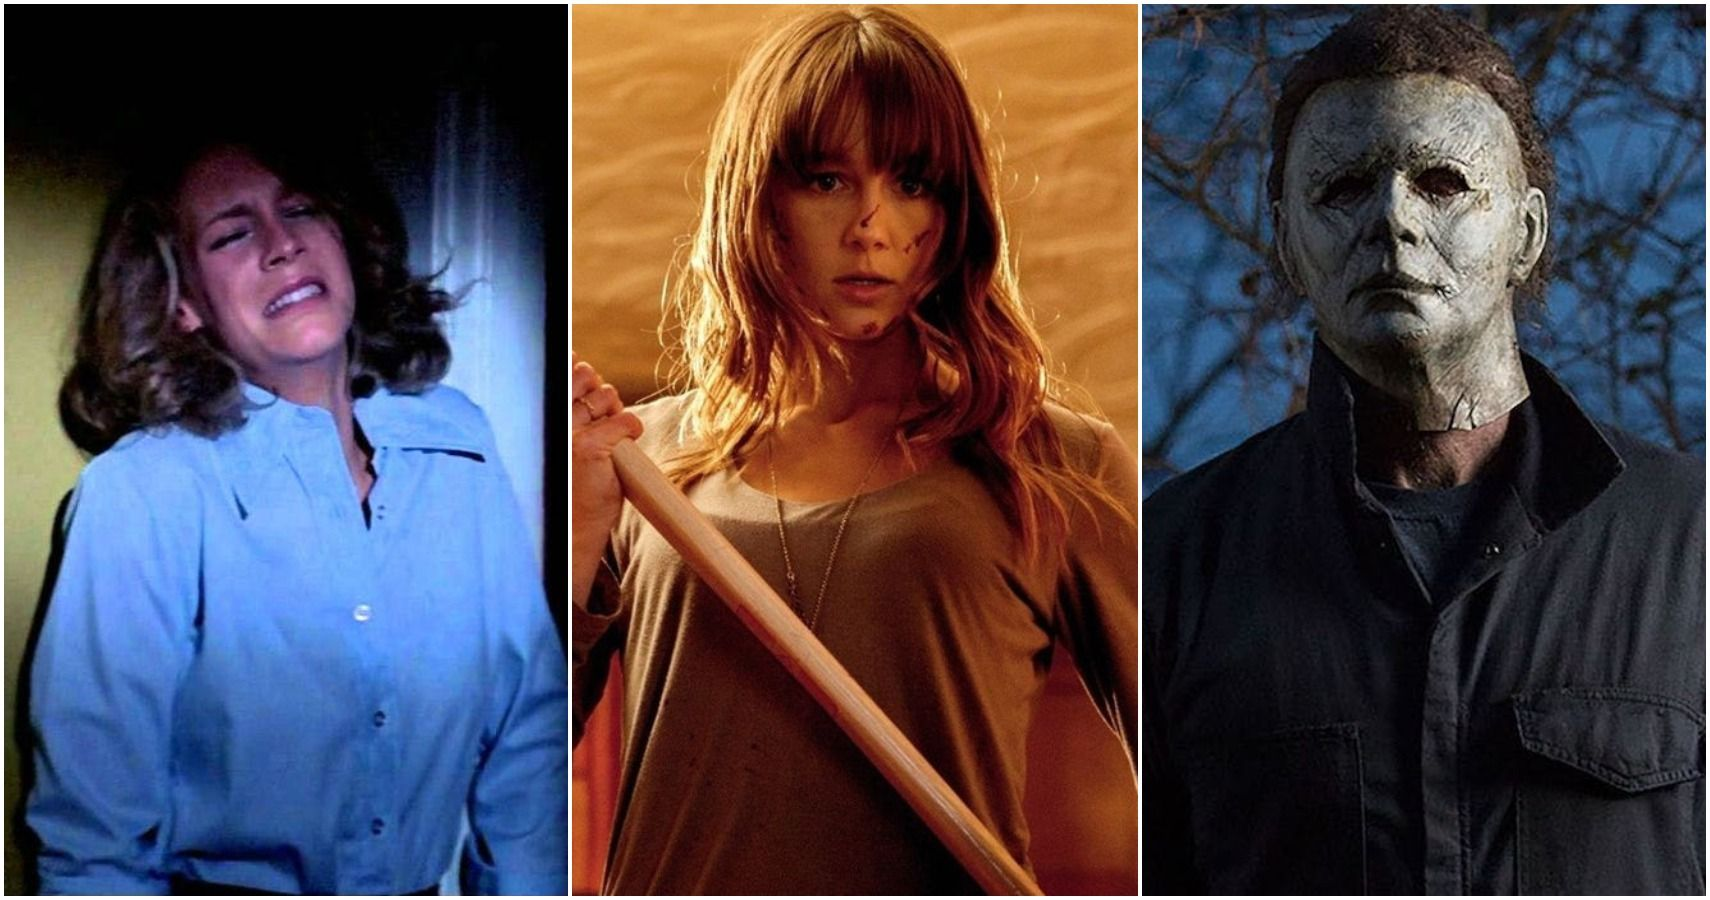 The 10 Best Slasher Movies Of All Time, According To IMDb